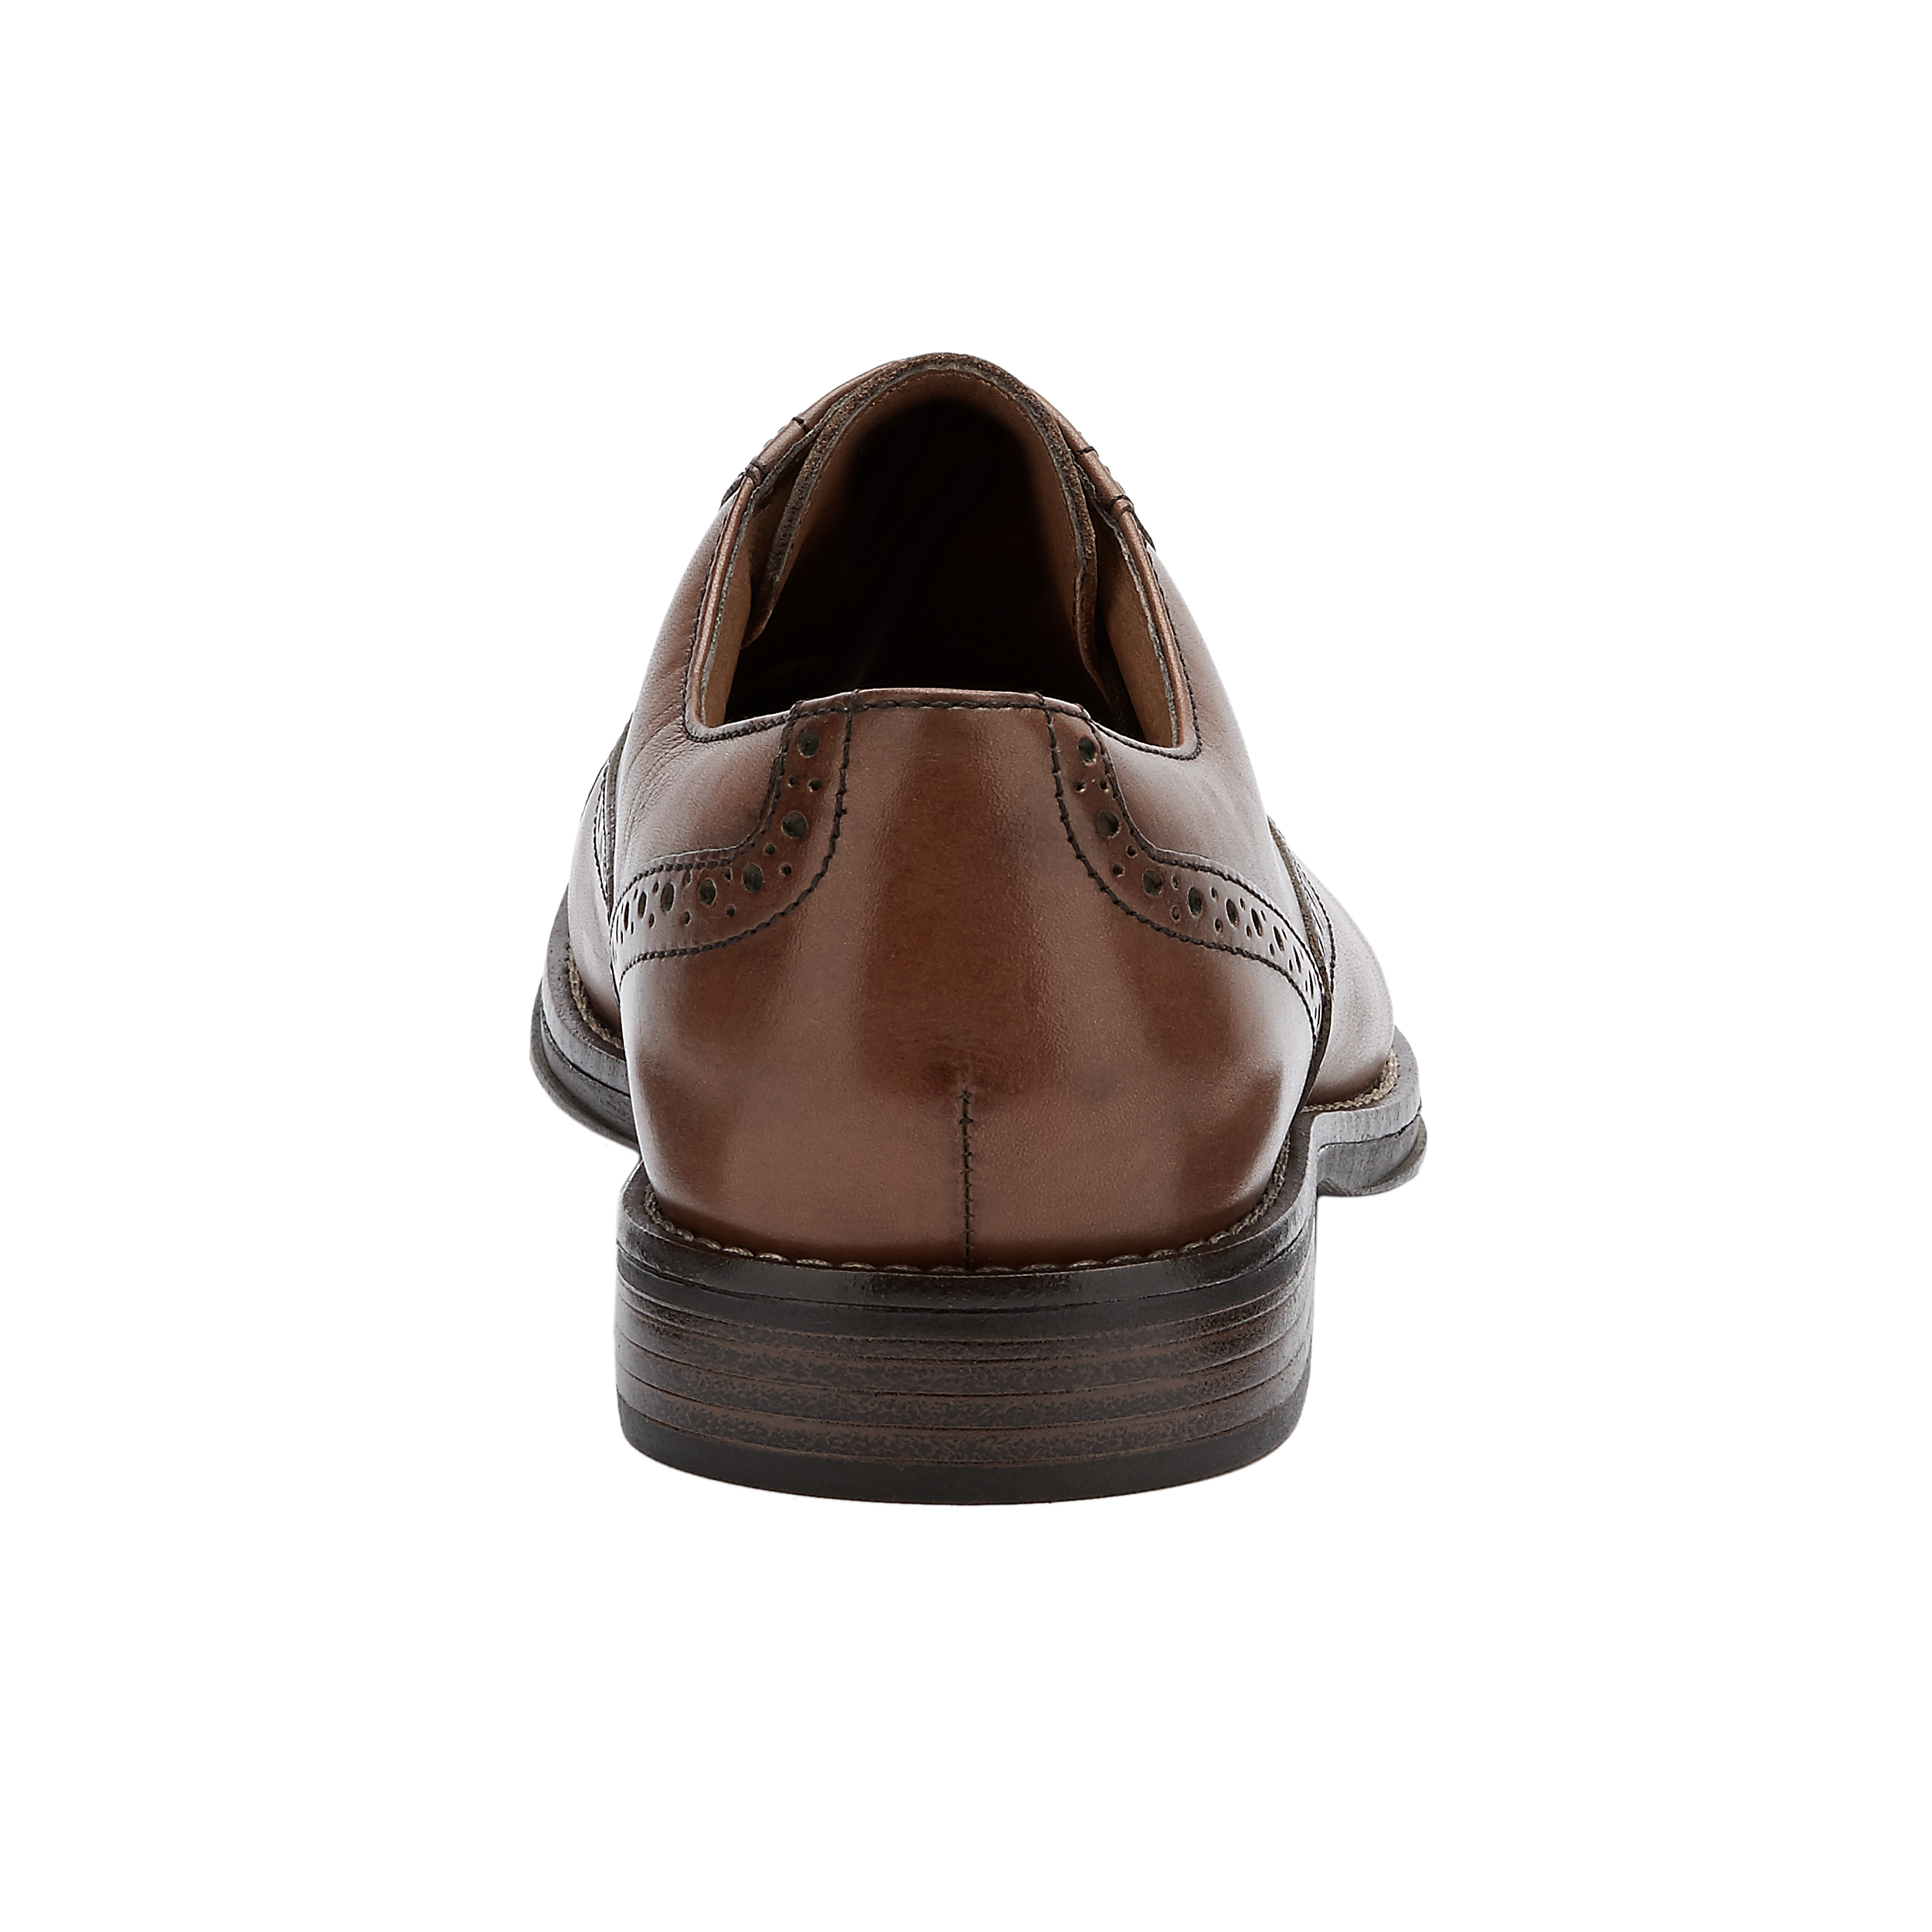 G-H-Bass-amp-Co-Mens-Woolf-Genuine-Leather-Classic-Cap-Toe-Lace-up-Oxford-Shoe